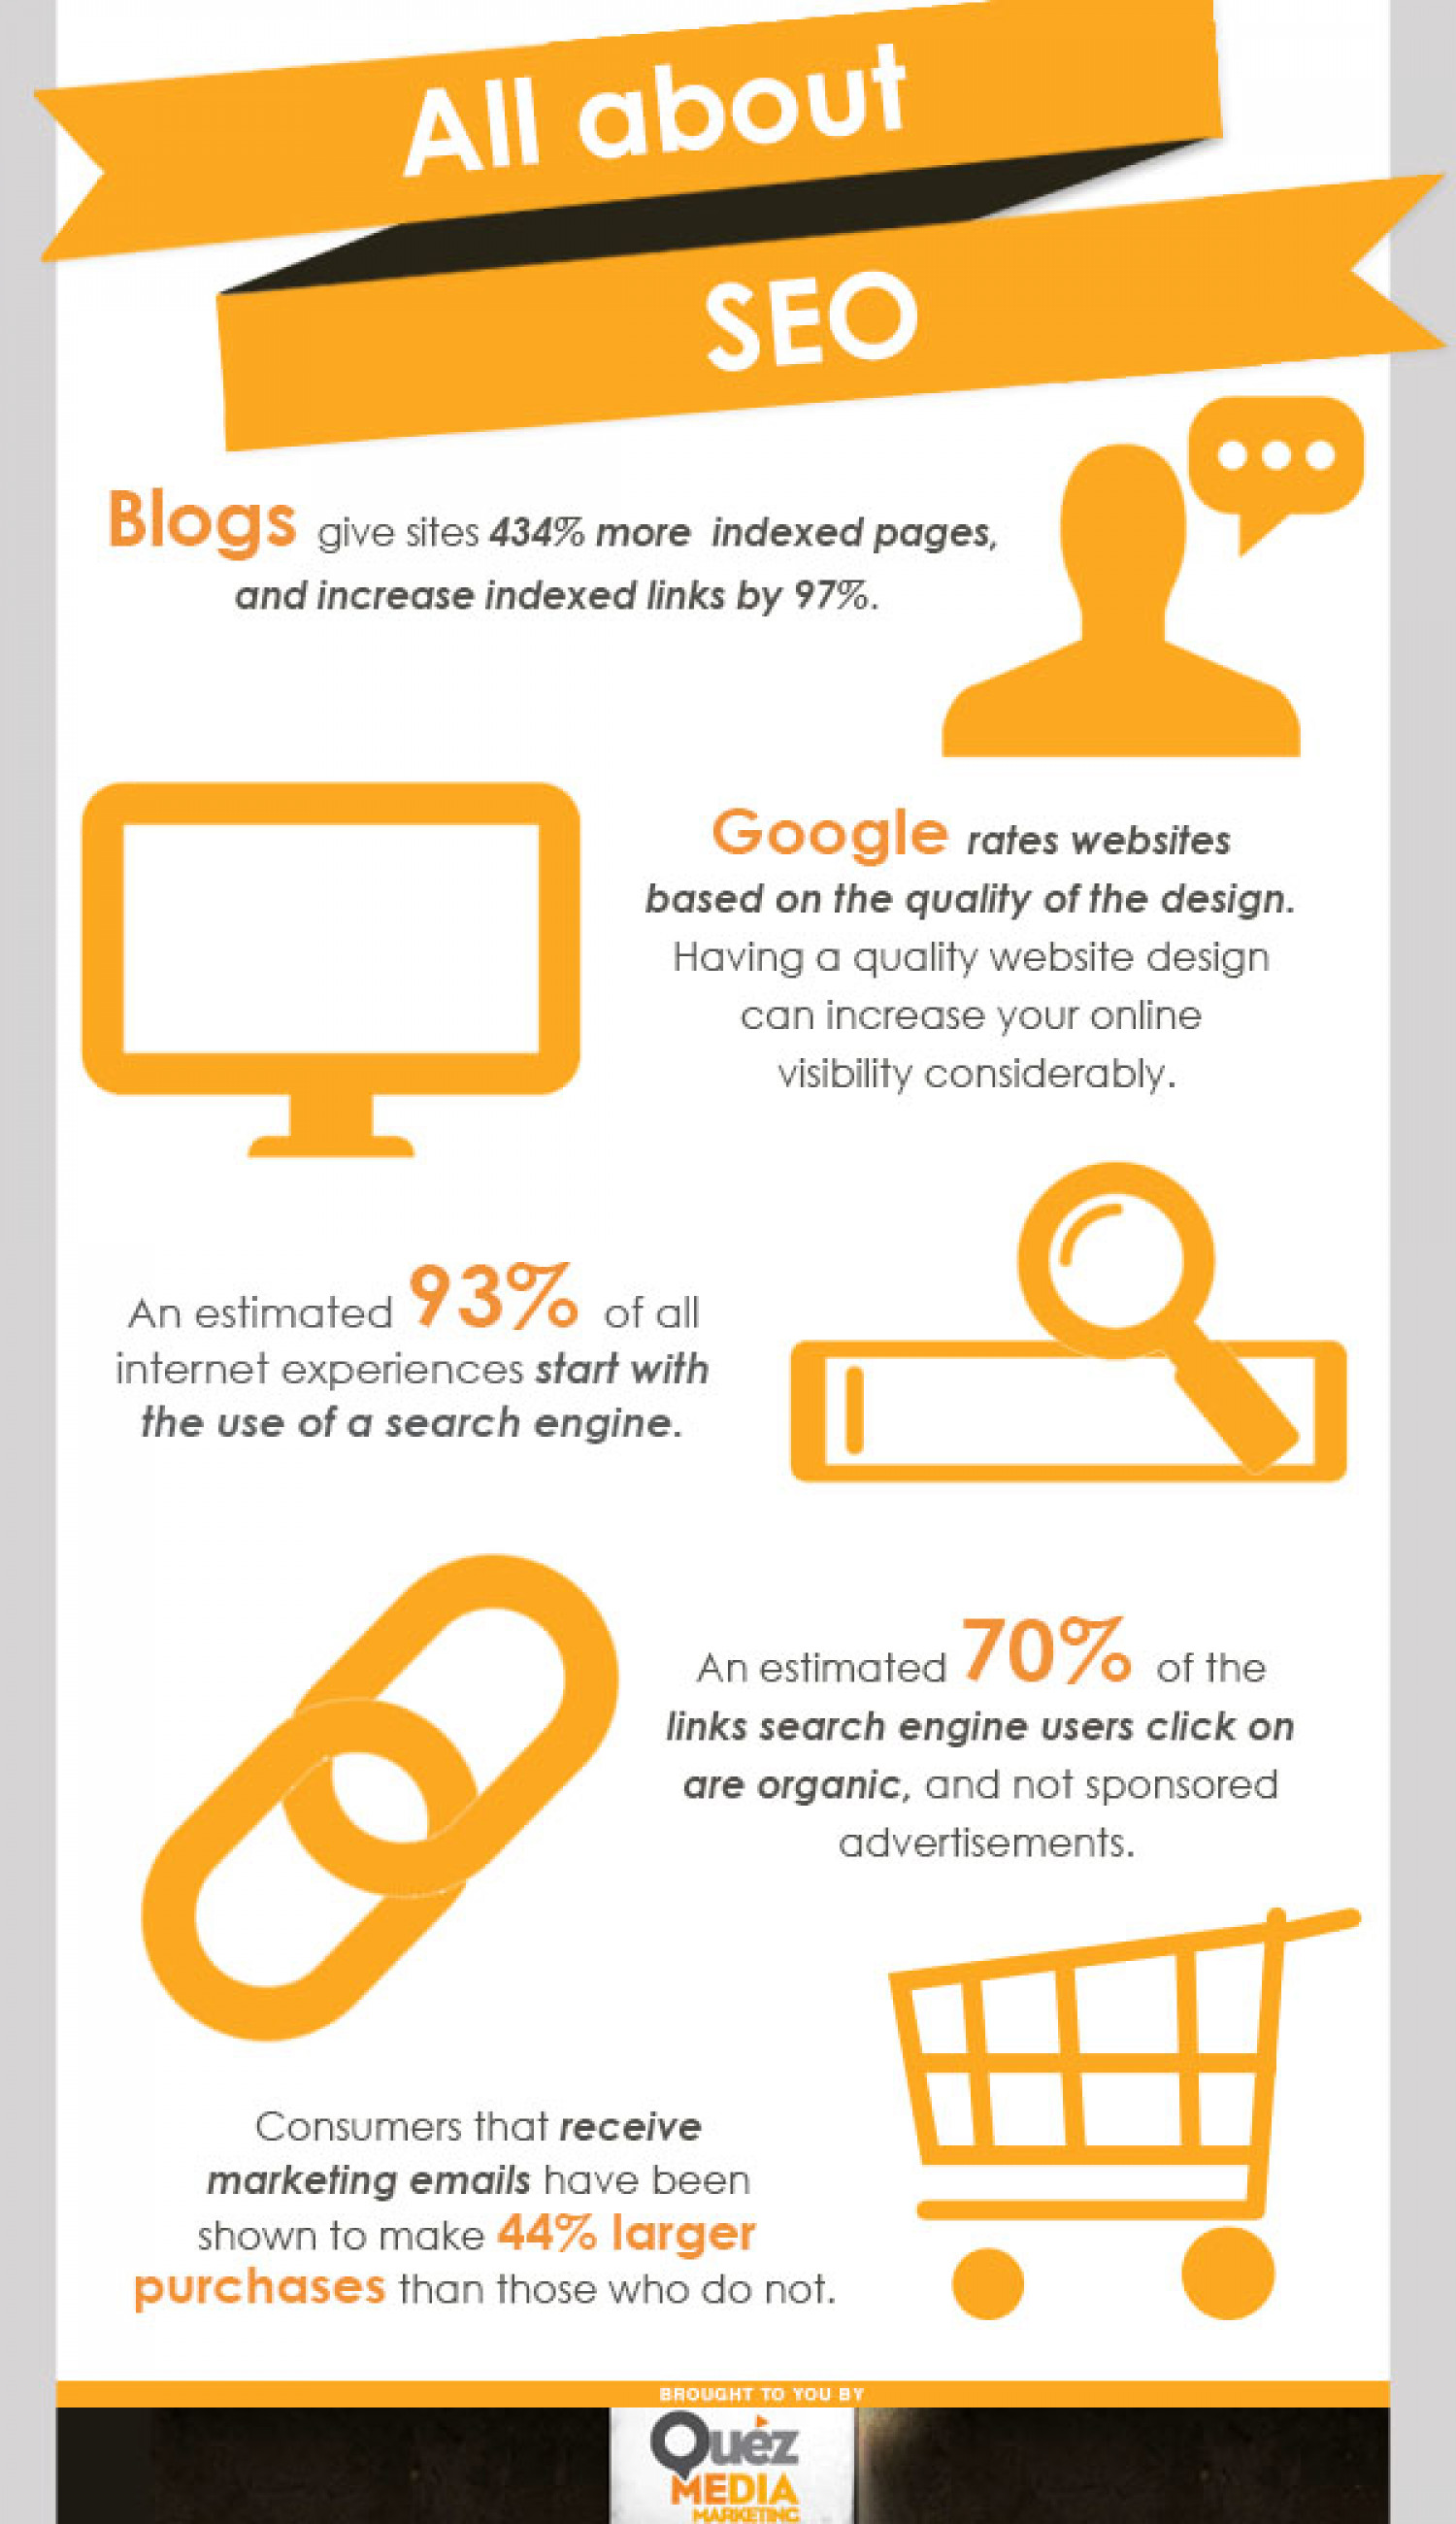 All About SEO Infographic